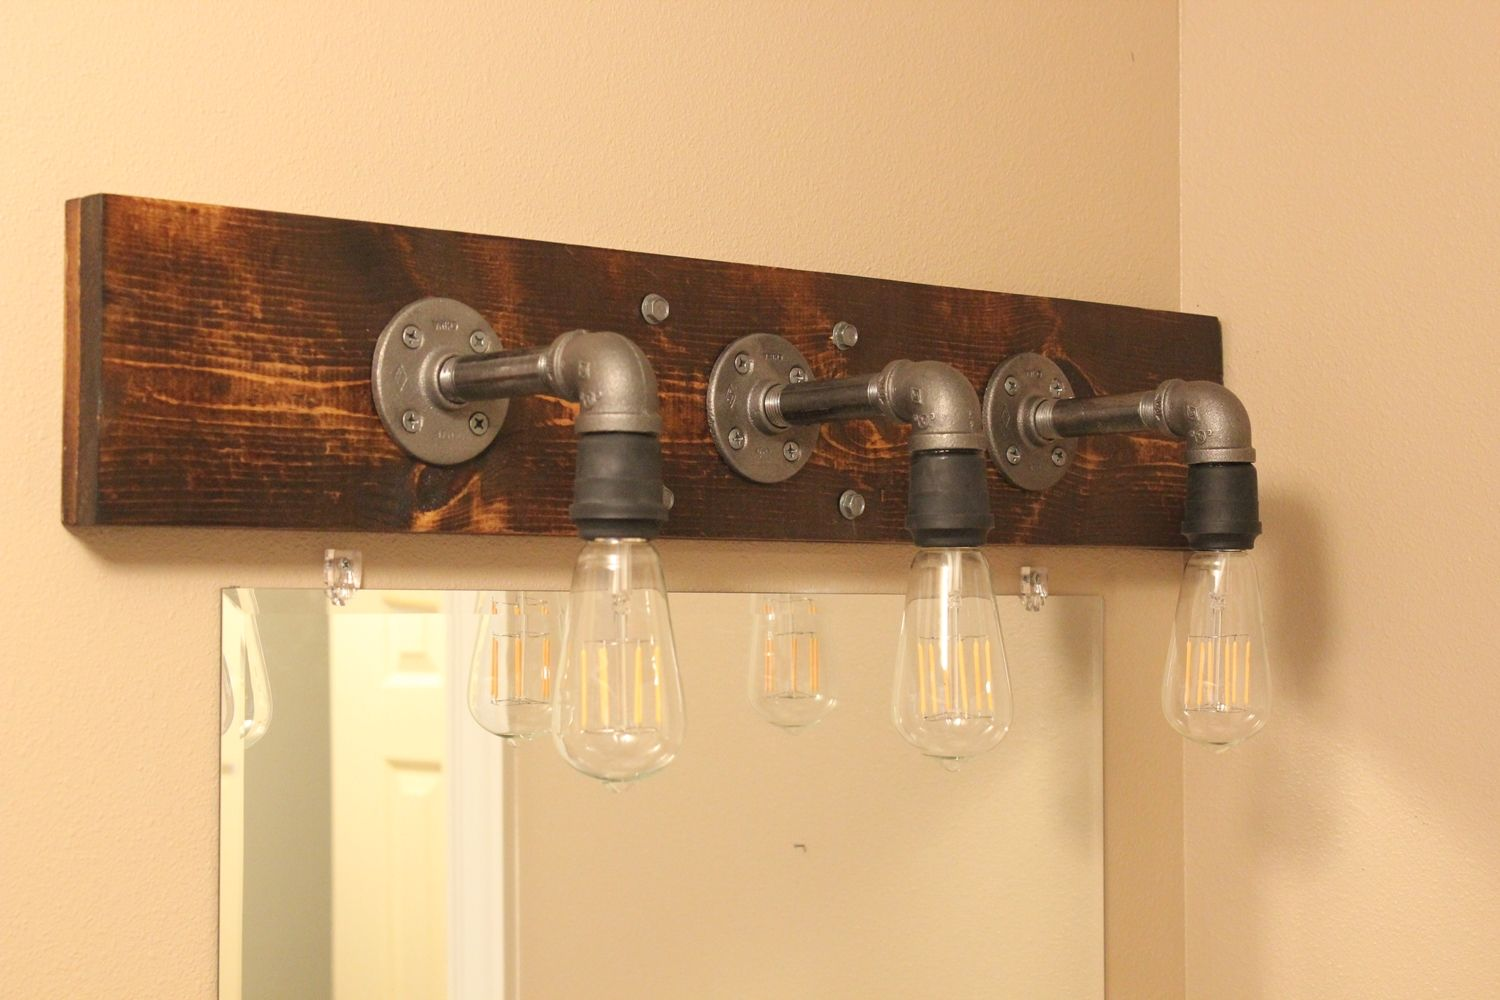 Bathroom Vanity Mason Jar Light diy industrial bathroom light fixtures